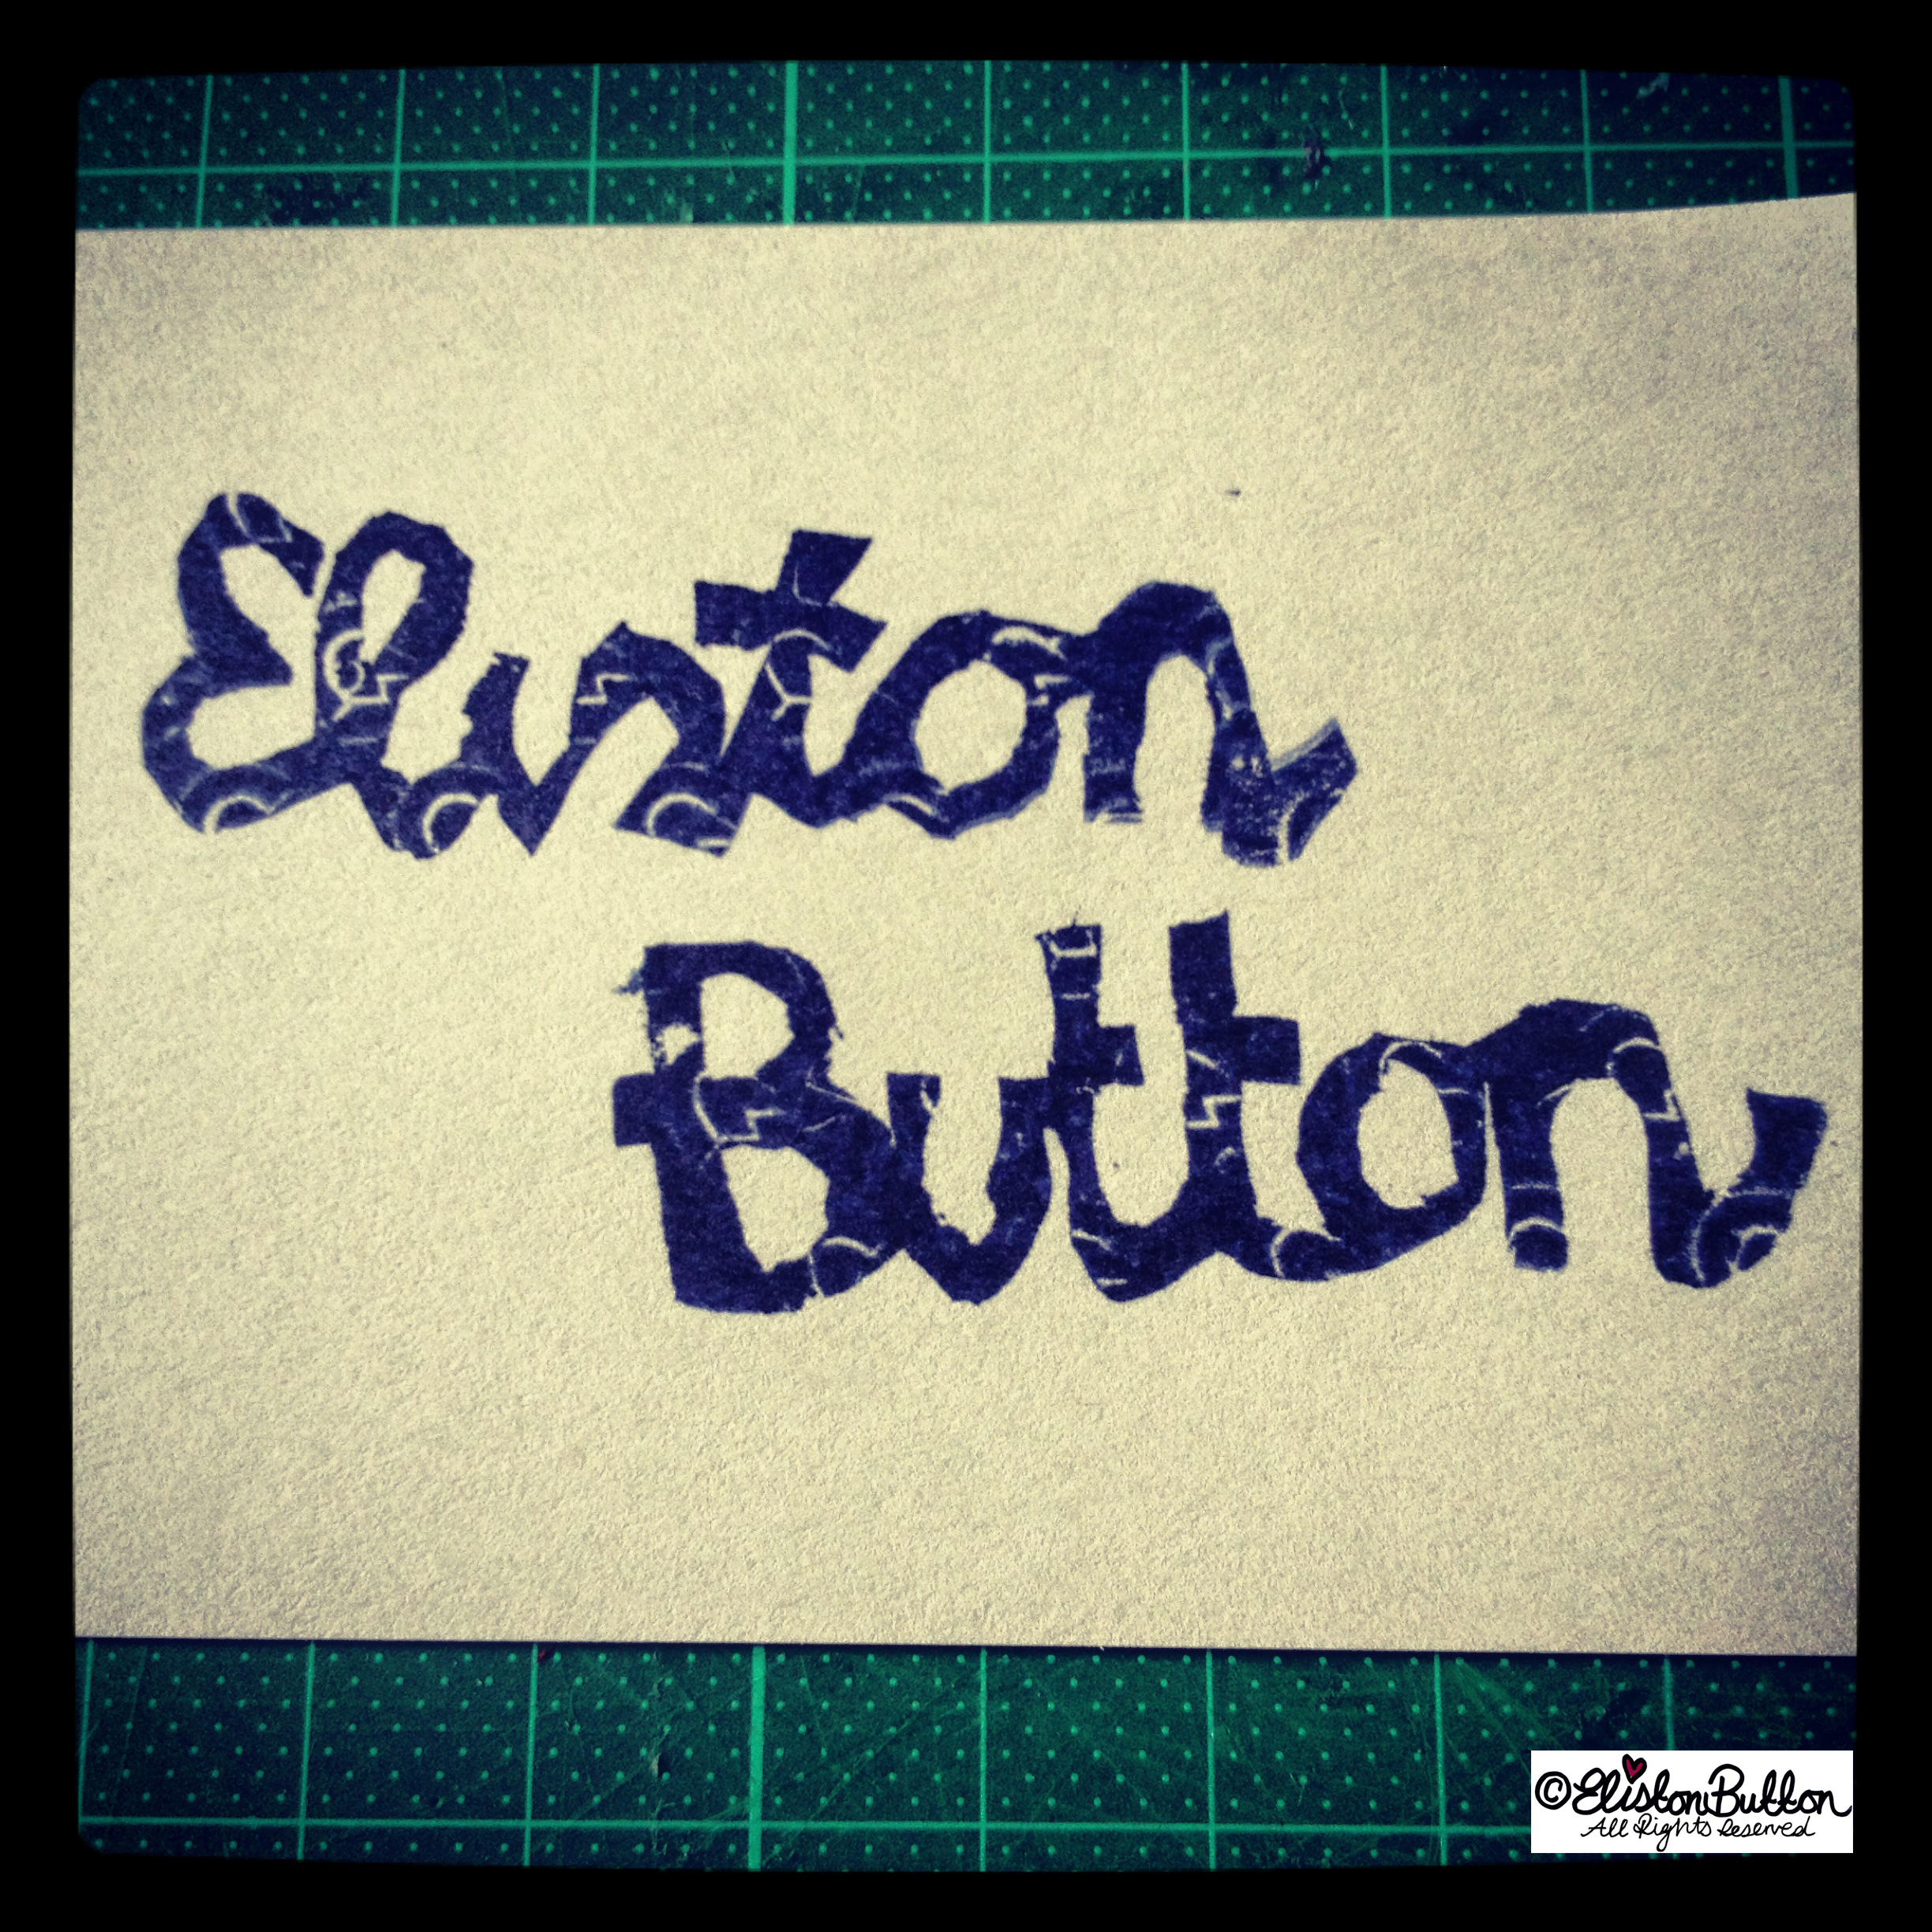 Eliston Button Inked Stamp - Hand Carved Rubber Stamps at www.elistonbutton.com - Eliston Button - That Crafty Kid – Art, Design, Craft & Adventure.